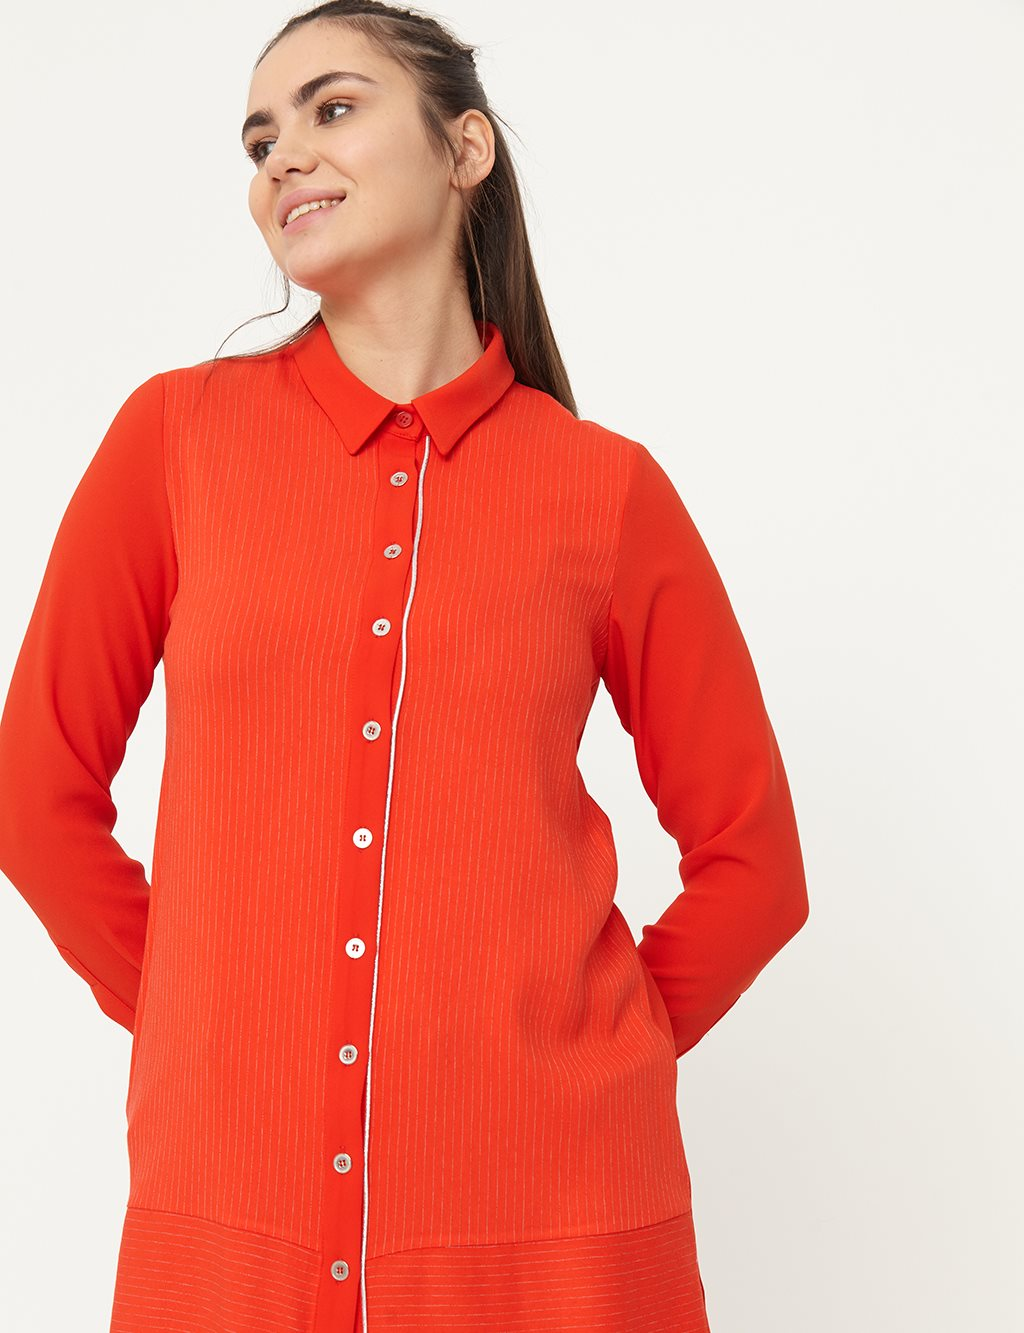 Piece Detailed Striped Tunic B21 81024 Red